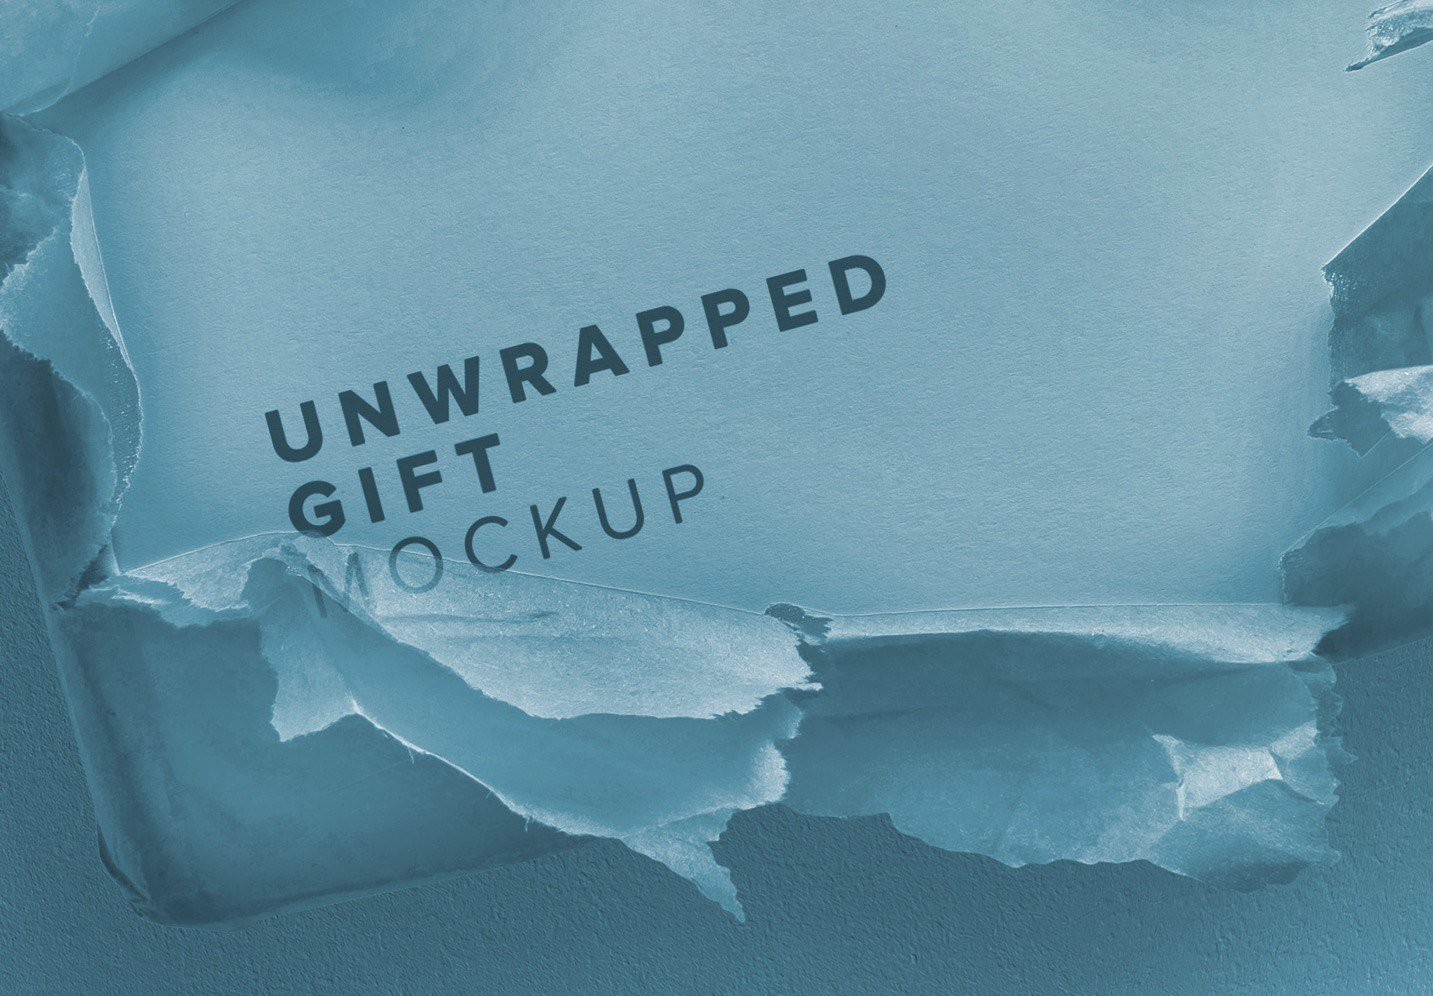 unwrapped gift mockup image04